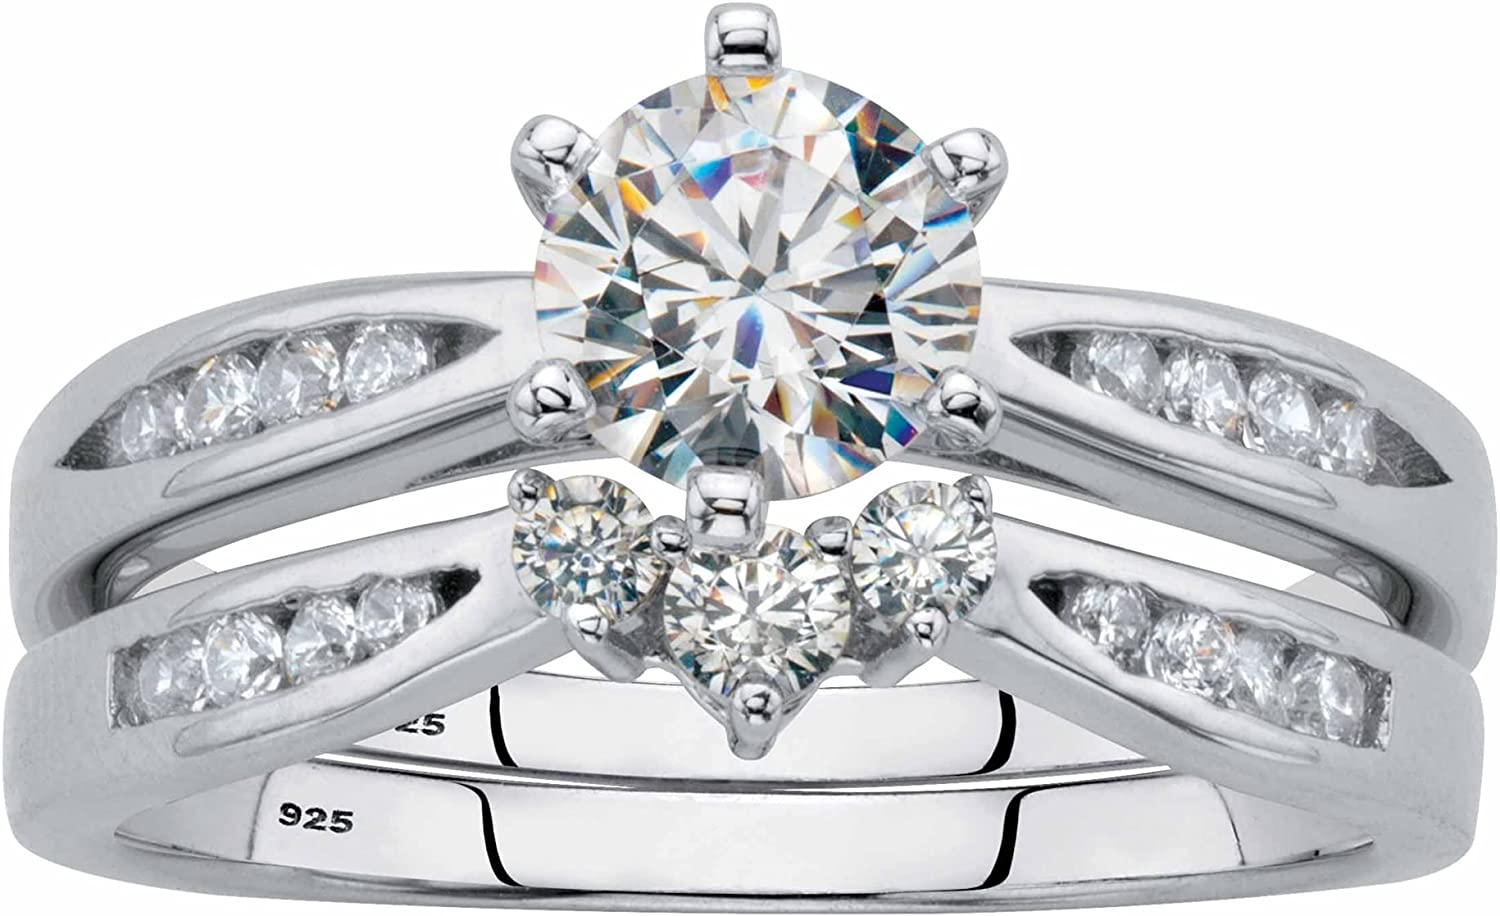 Sterling Many popular brands Silver Round Cubic Zirconia Channel shipfree Ring Set Bridal